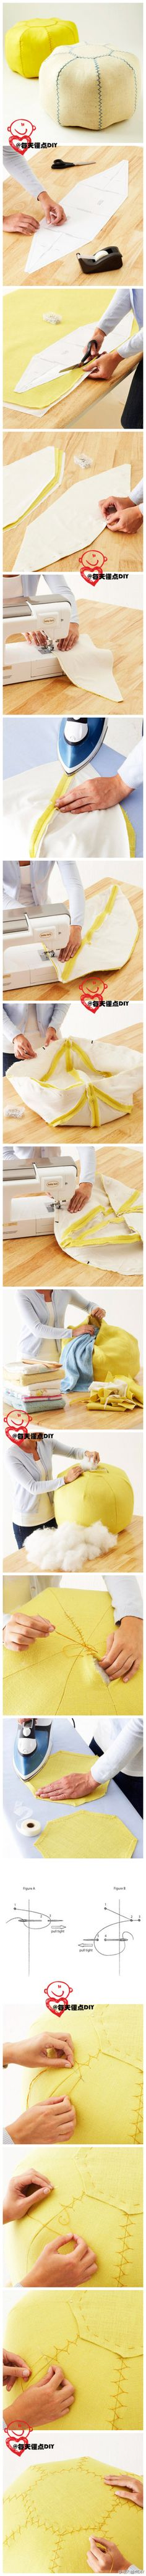 pouffe how-to